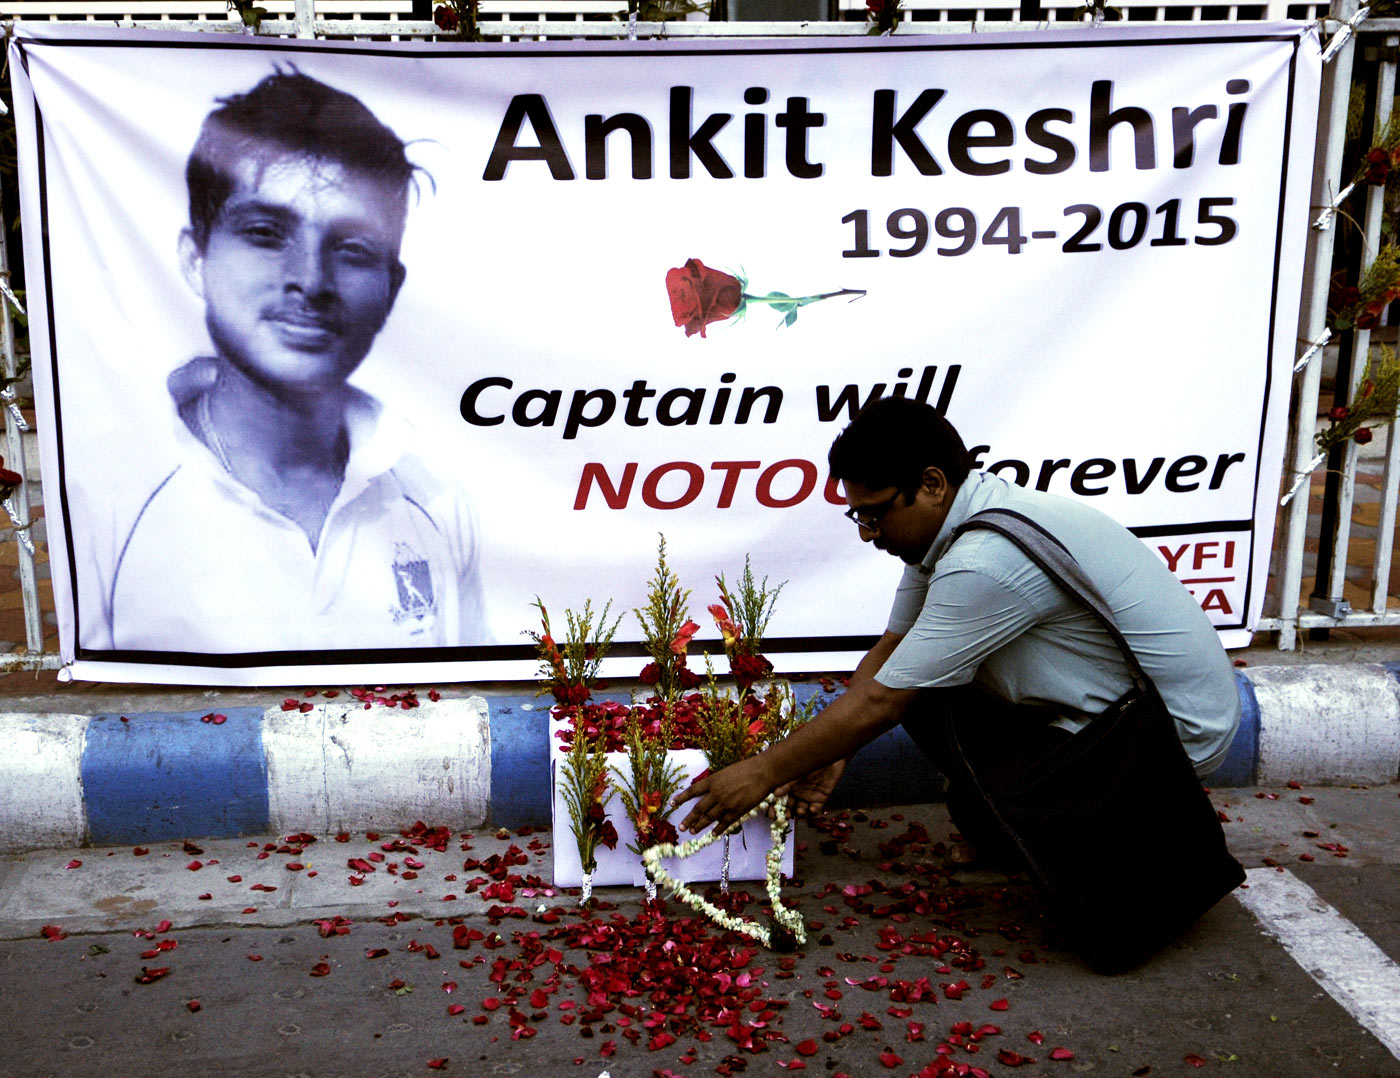 Ankit Keshri's death, unlike Phillip Hughes', was news for only a brief time